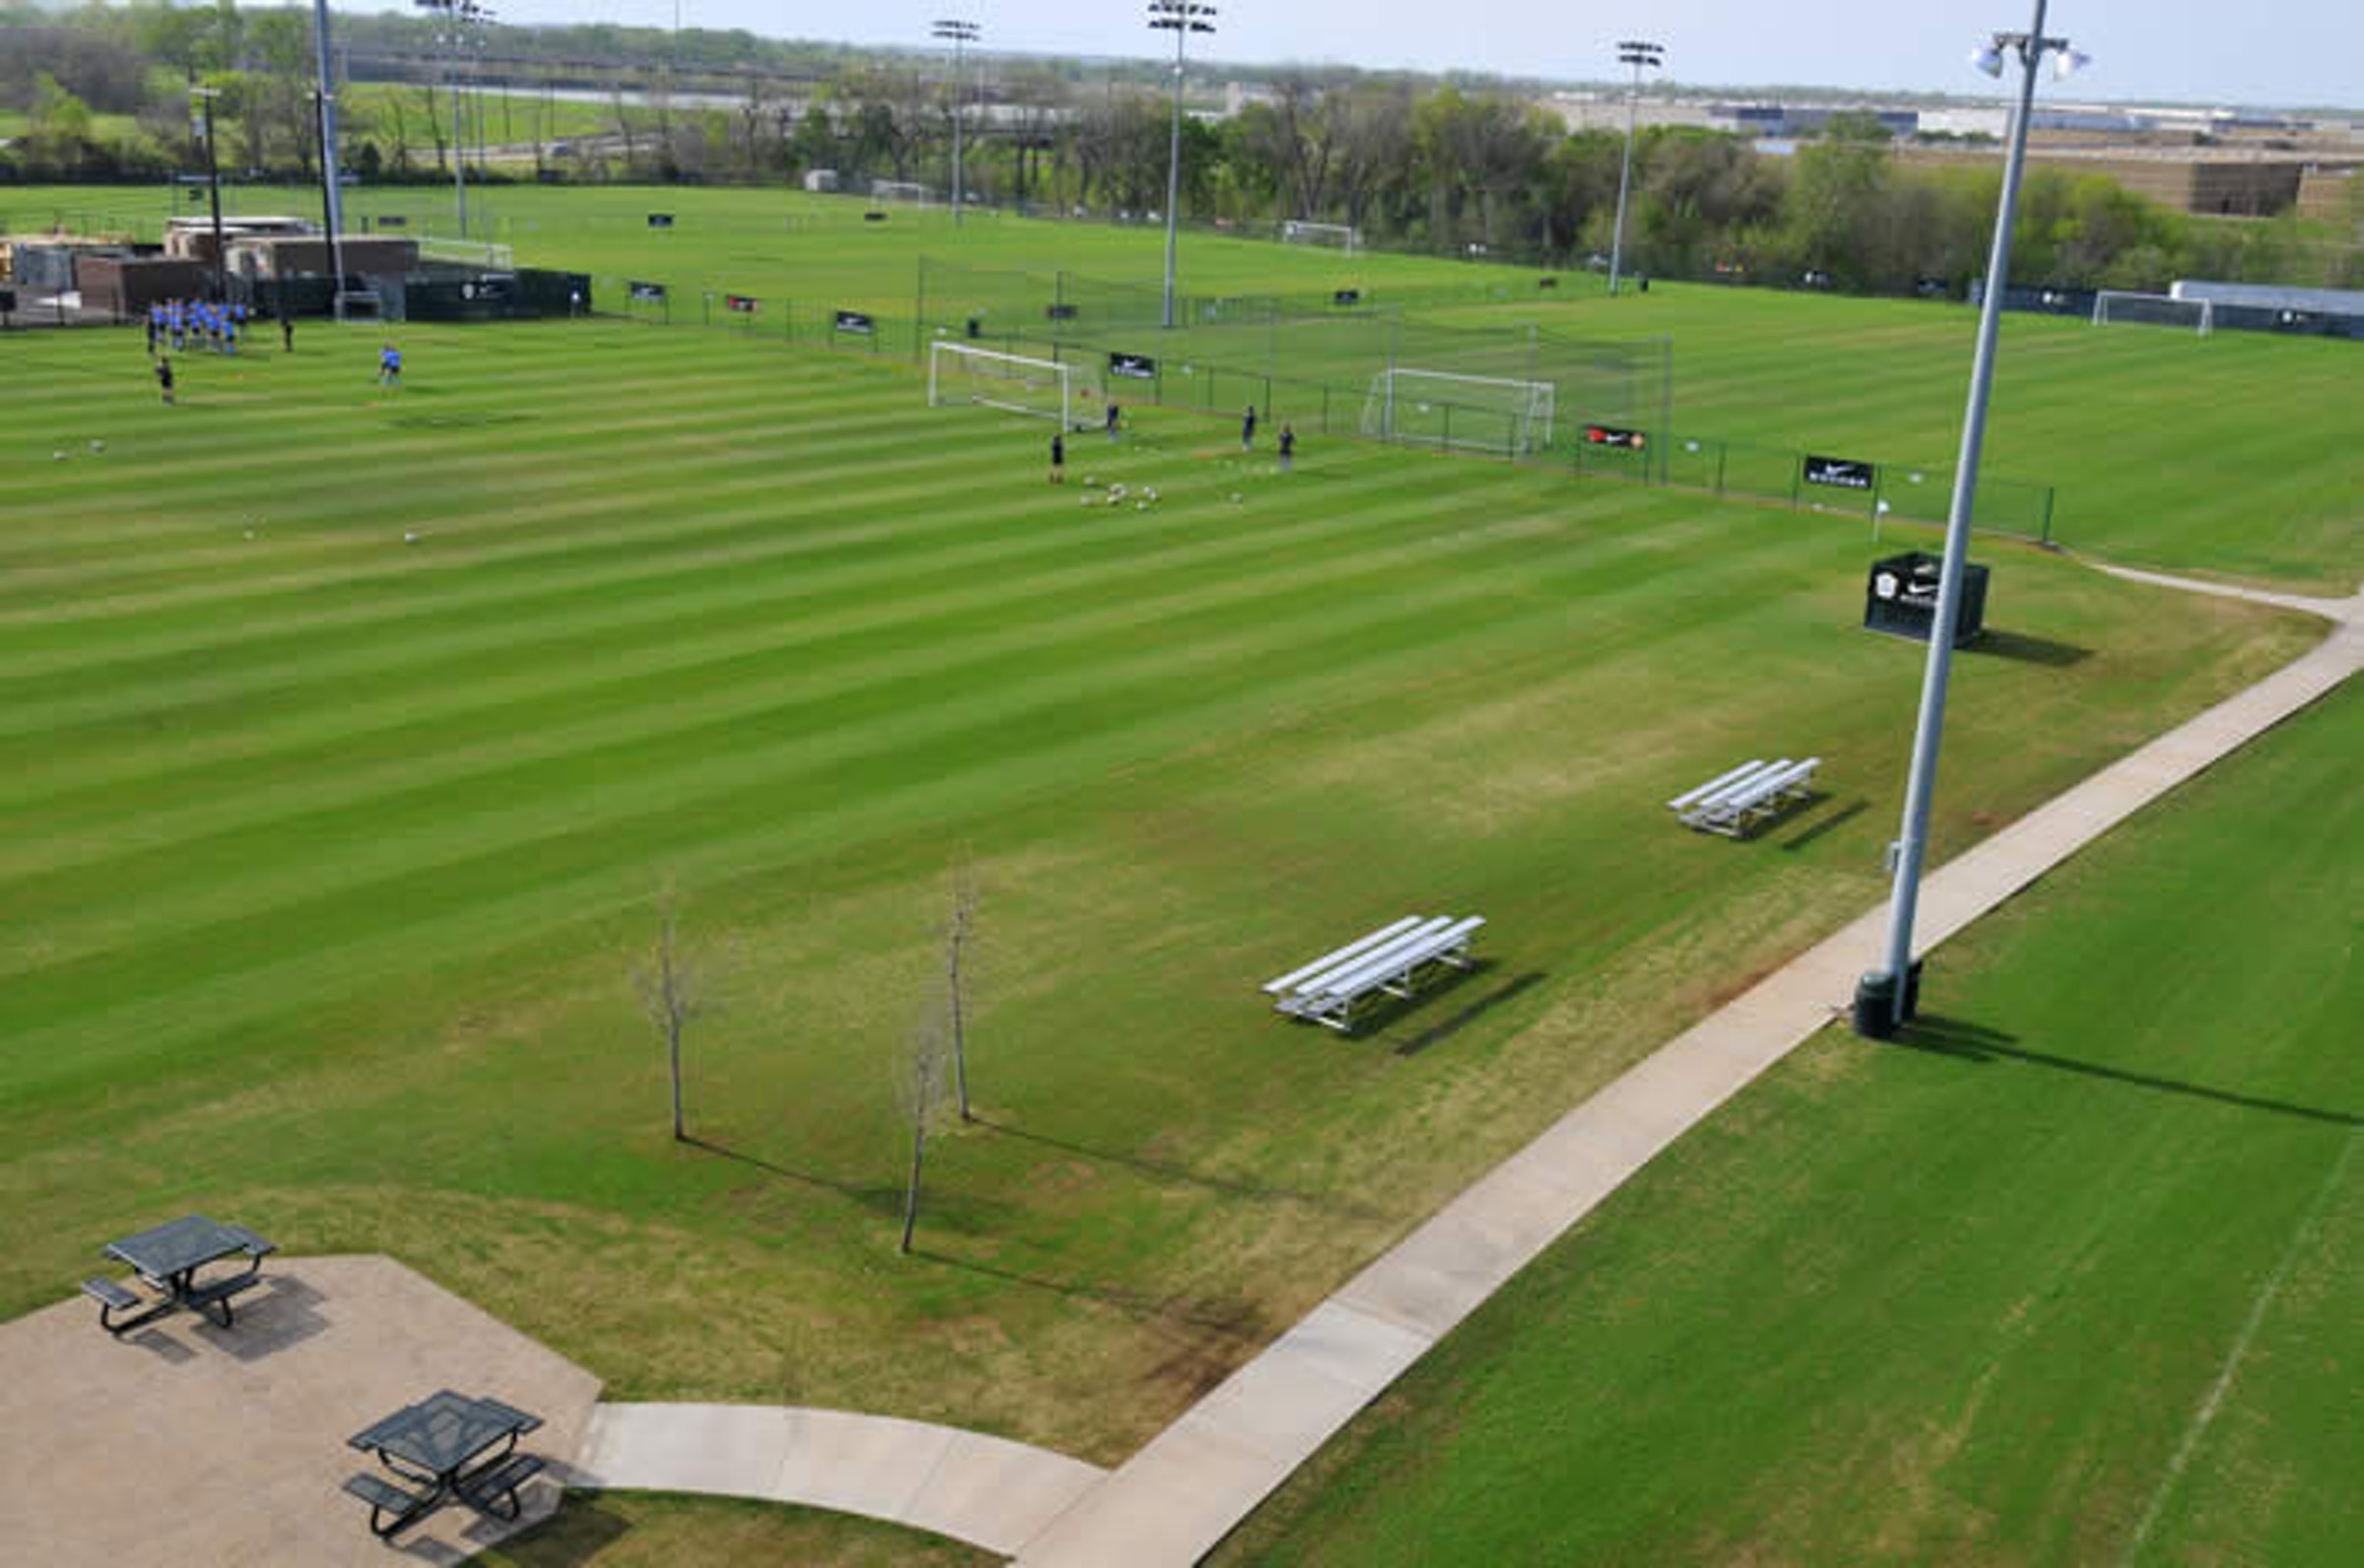 Ross Stewart Soccer Complex in Beyond Dallas